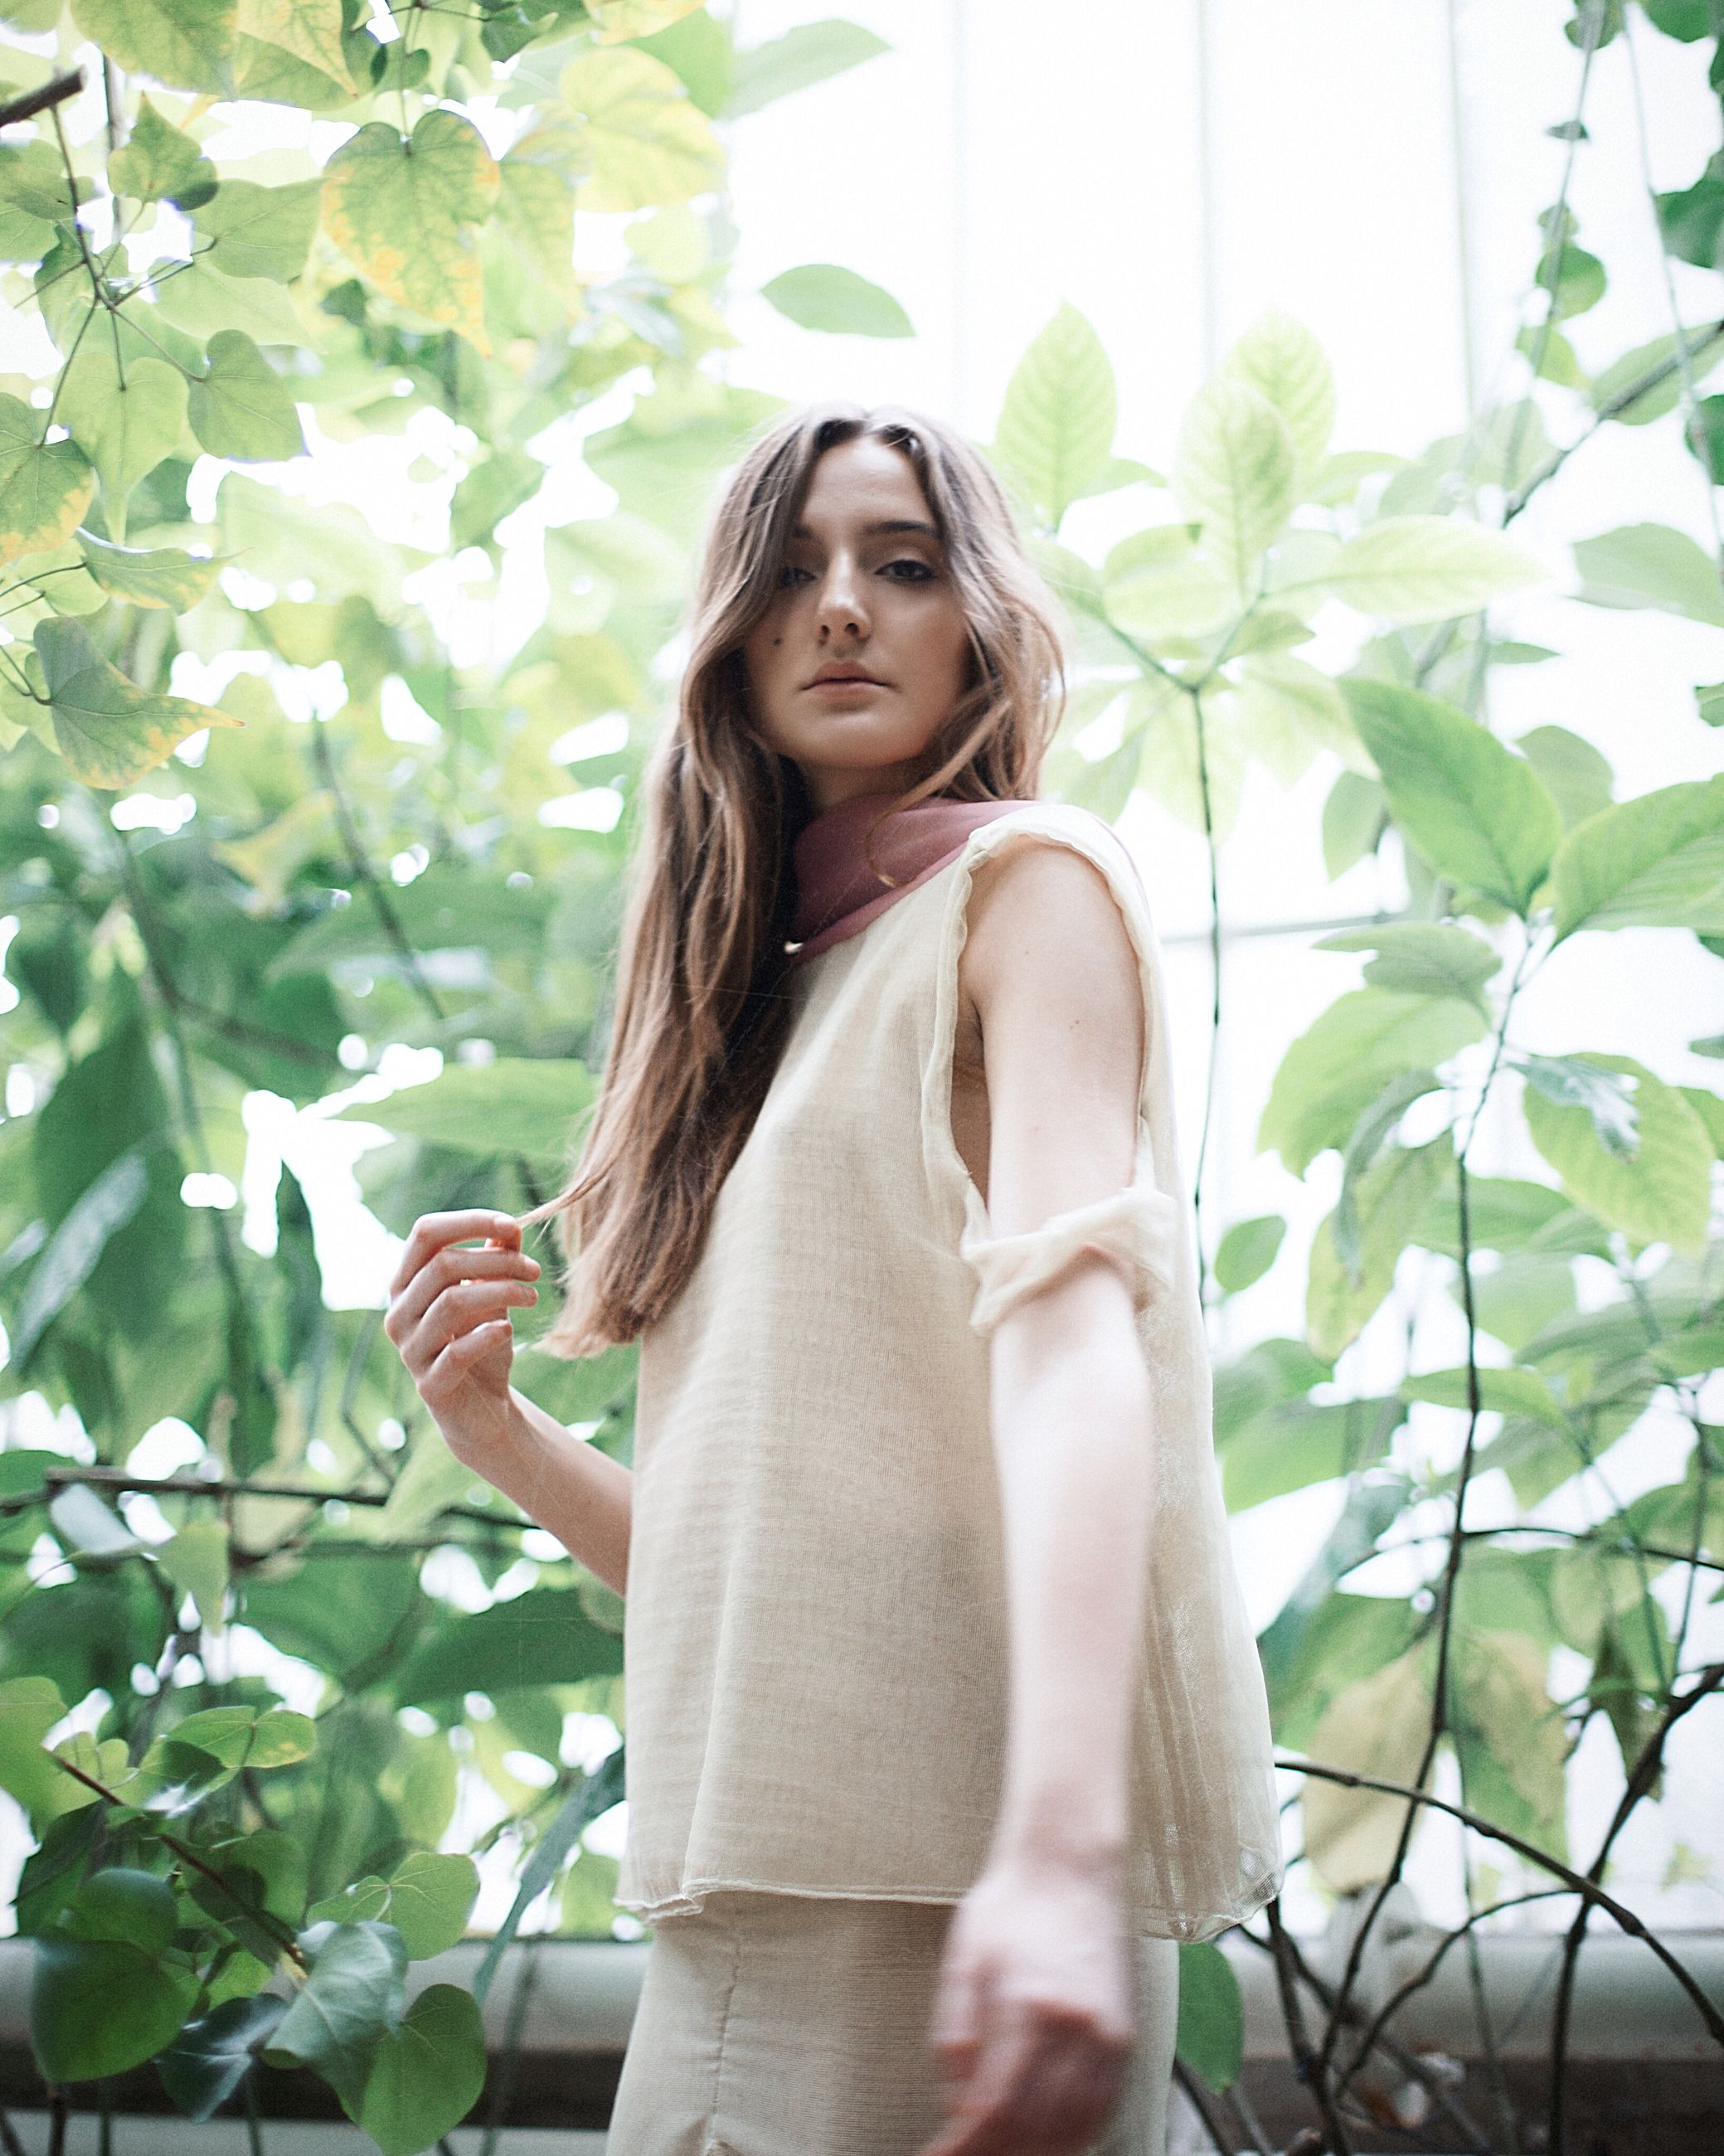 young adult, young women, long hair, person, looking at camera, portrait, lifestyles, front view, standing, three quarter length, leisure activity, casual clothing, tree, smiling, beauty, waist up, leaf